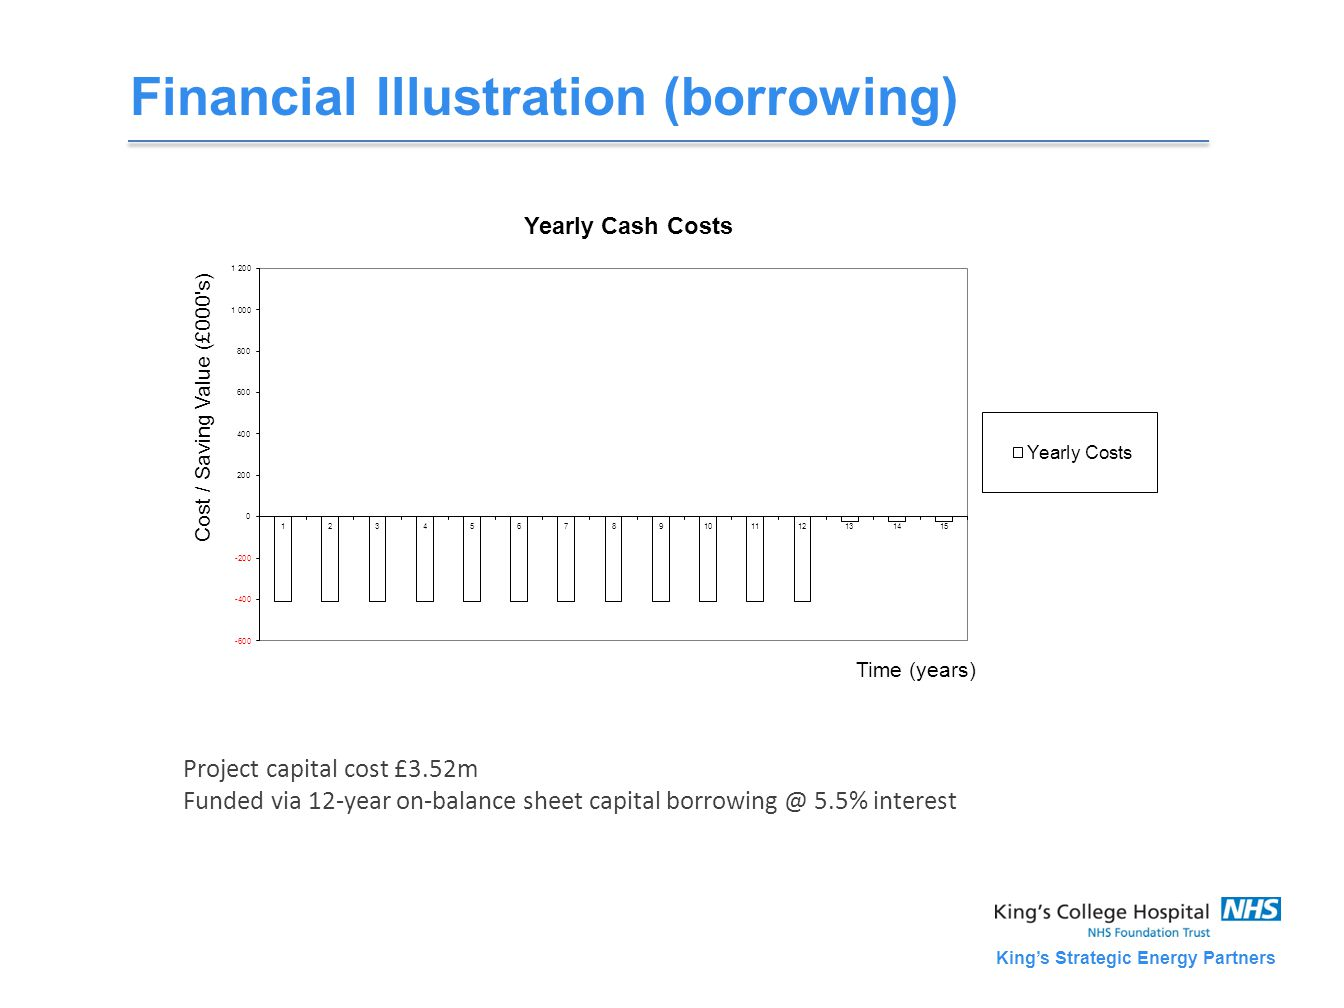 King's Strategic Energy Partners Financial Illustration (borrowing) Project capital cost £3.52m Funded via 12-year on-balance sheet capital borrowing @ 5.5% interest